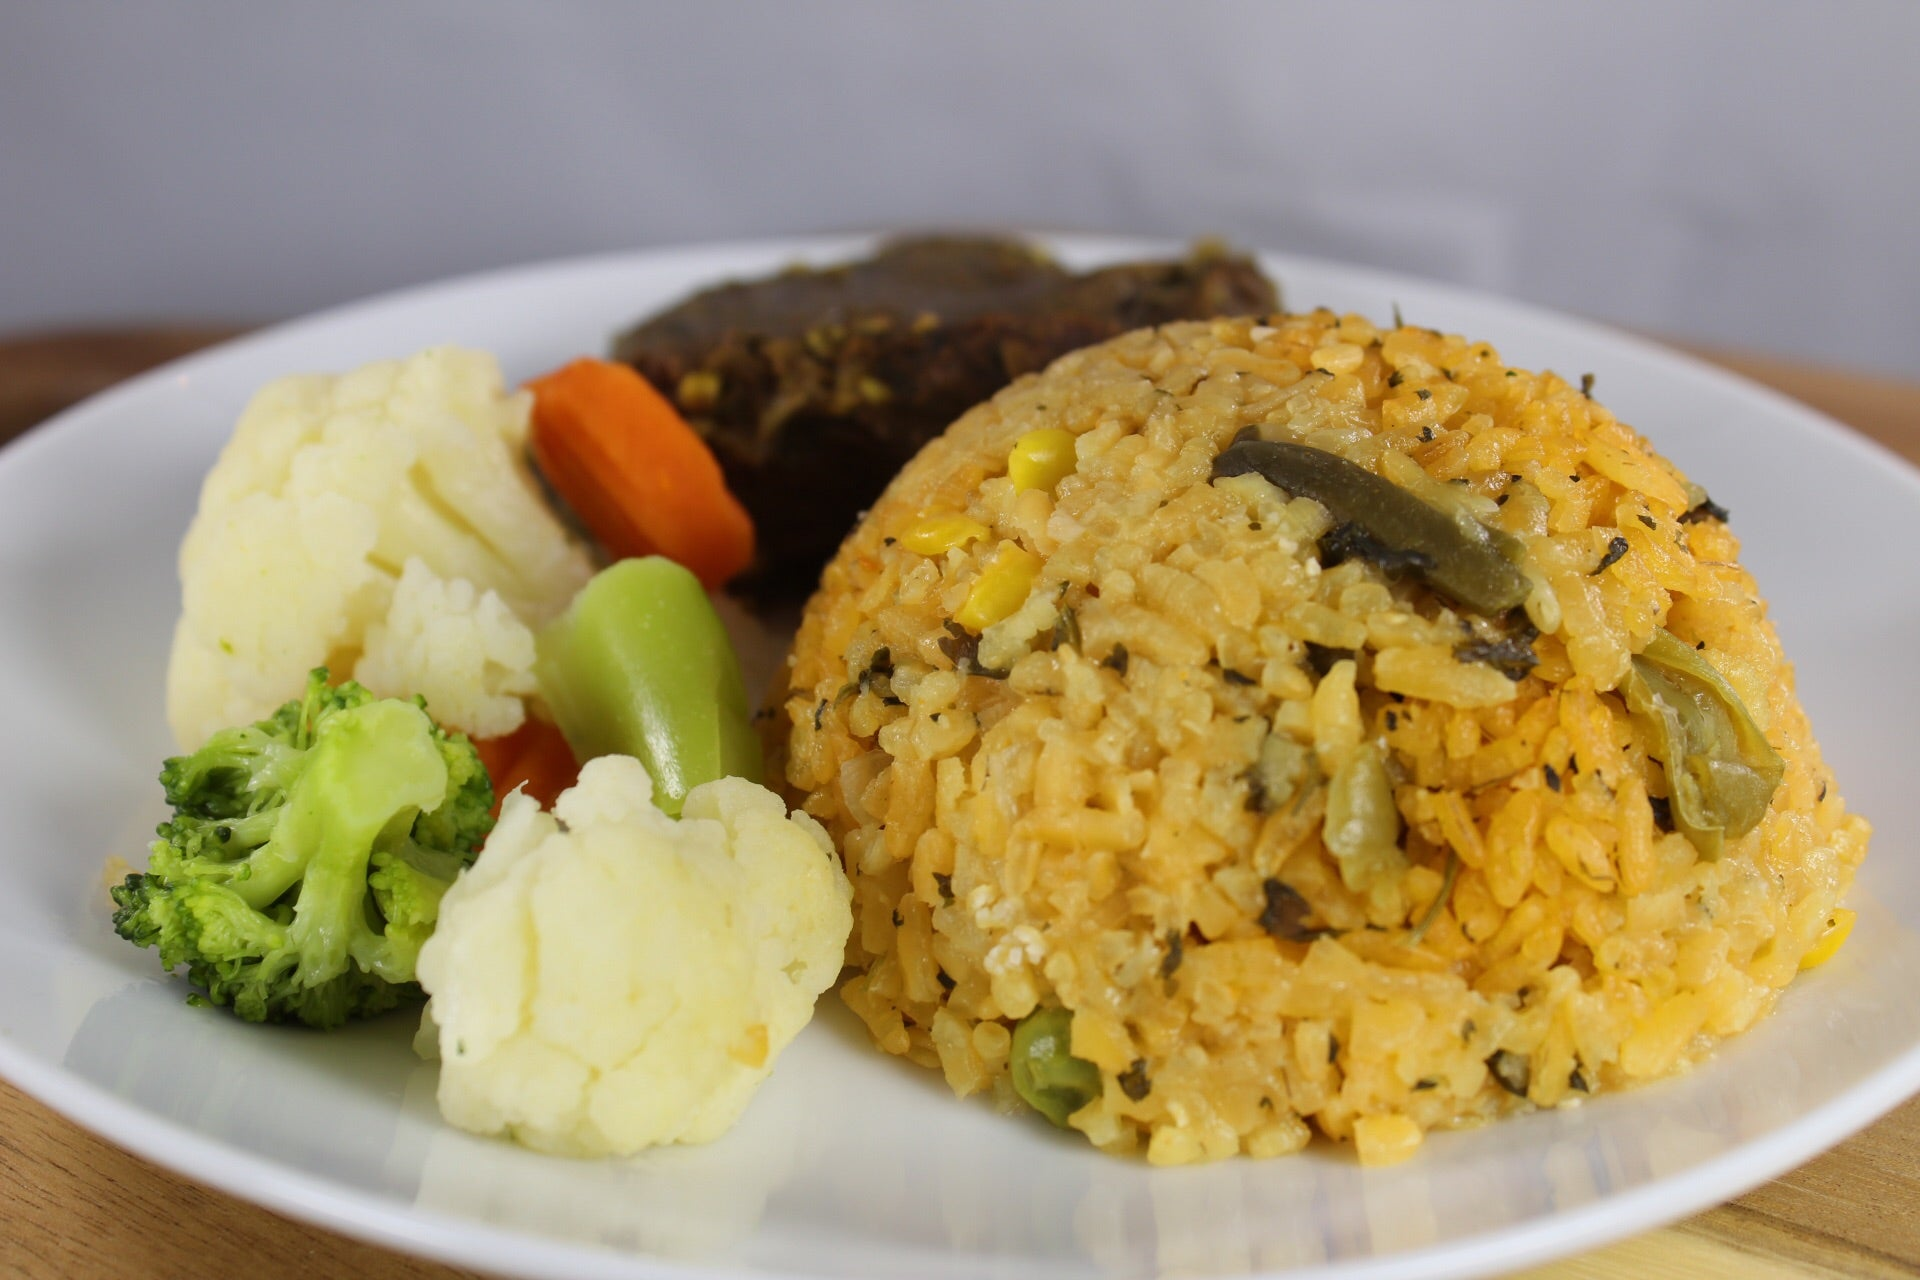 Arroz con Vegetales y Tenderloins en Salsa de Tamarindo / Rice with Vegetables and Tenderloins in Tamarind Sauce